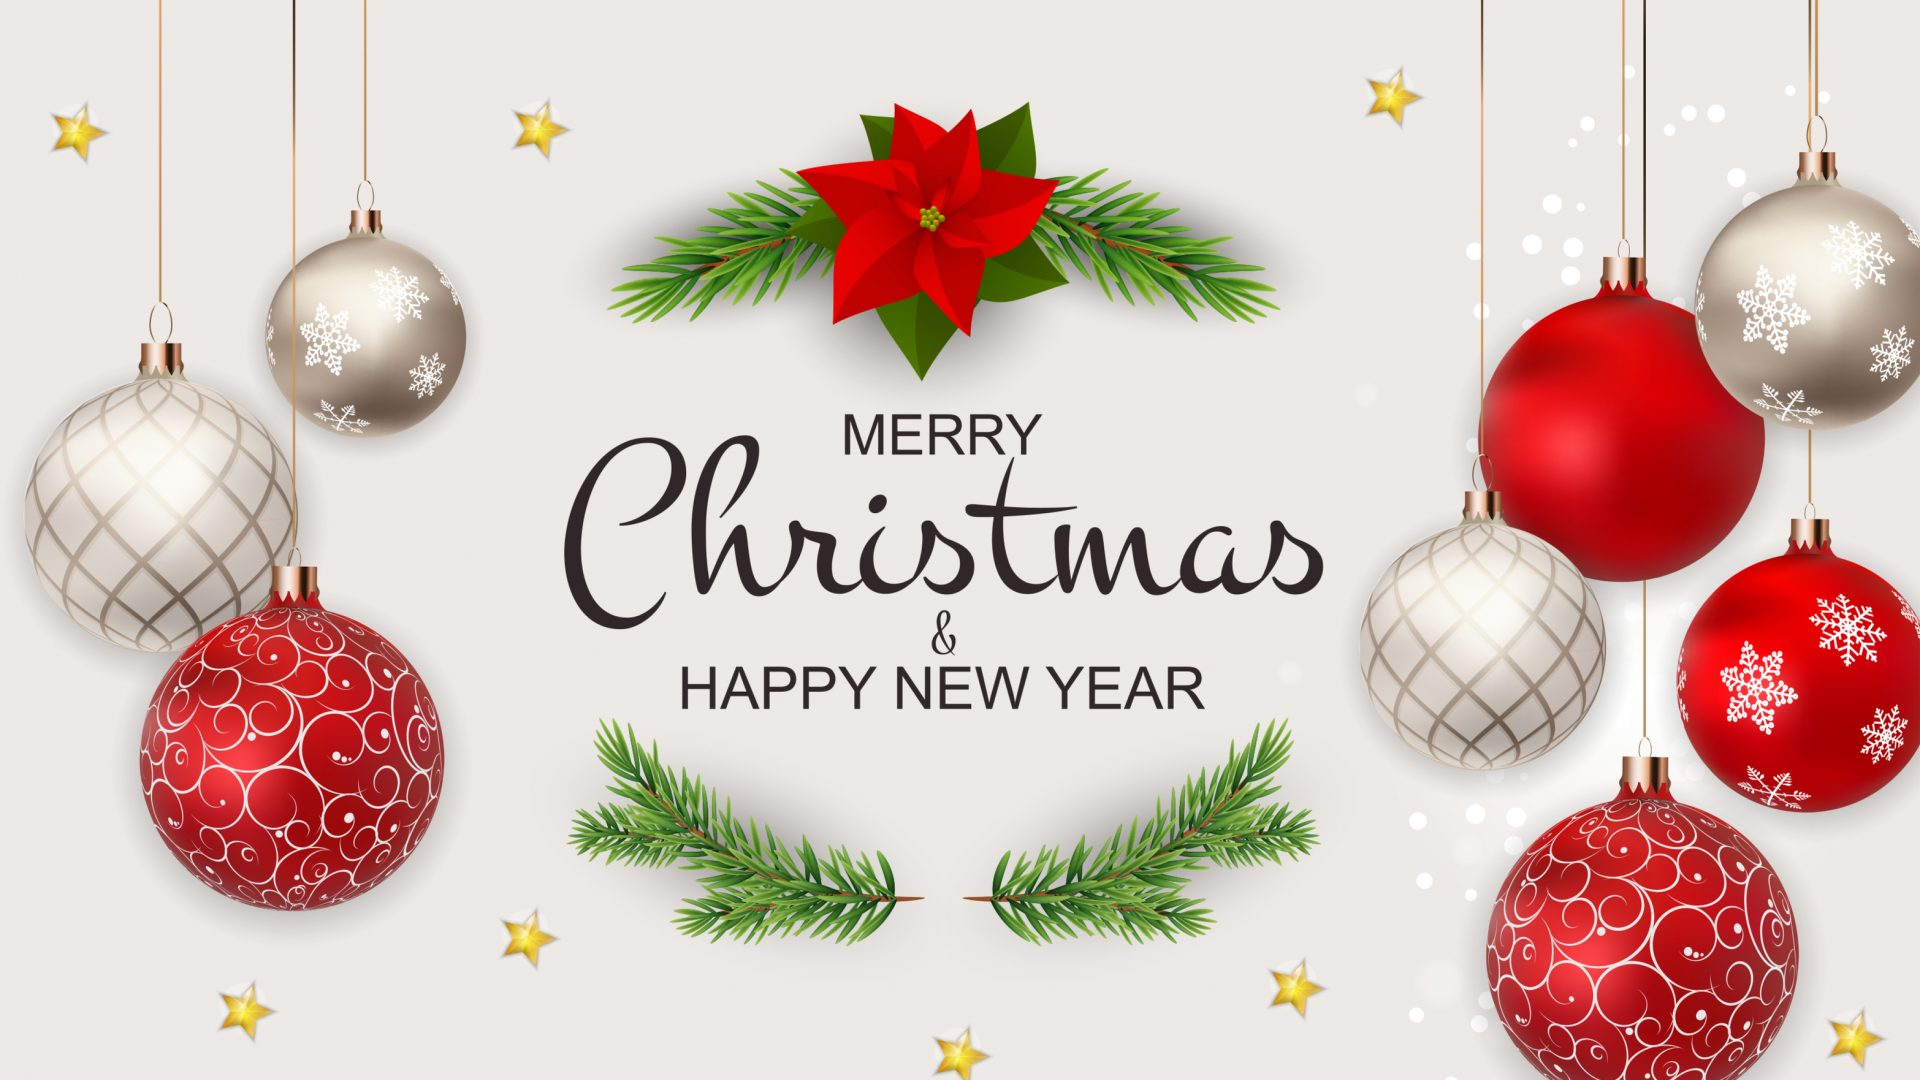 A banner with some Christmas ornaments design that says Merry Christmas and a Happy New Year